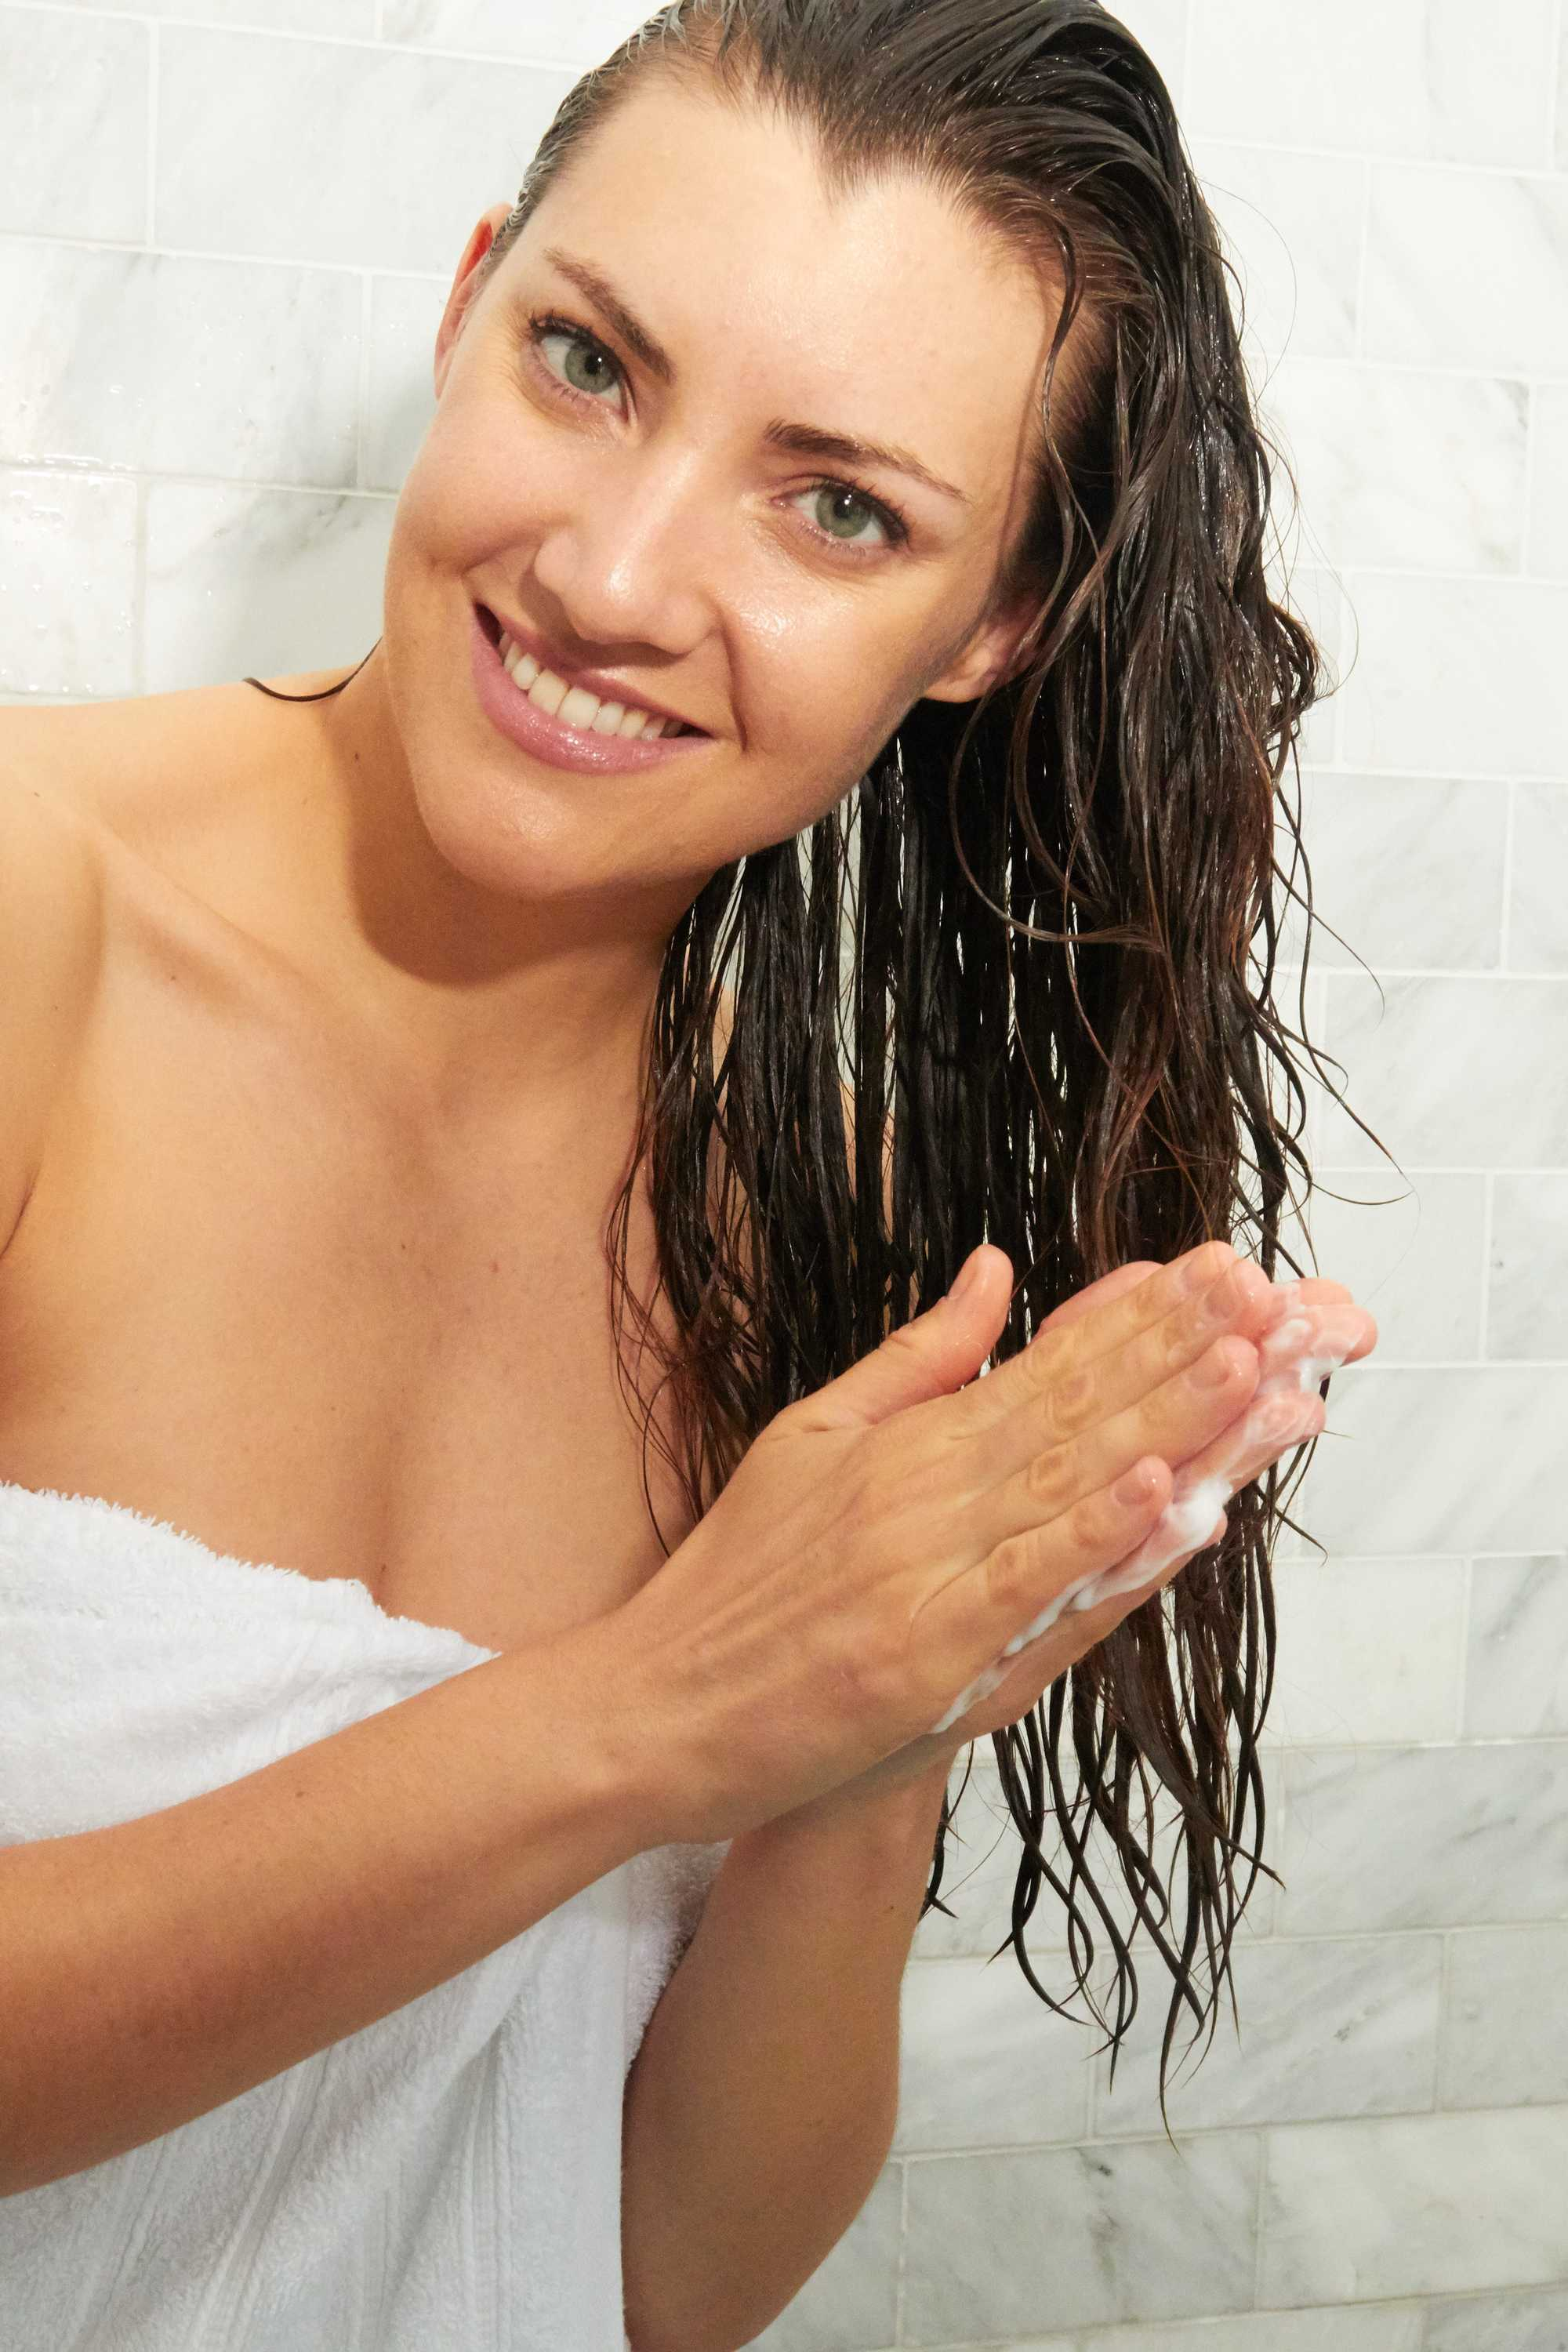 brunette woman smiling and putting shampoo onto her hair